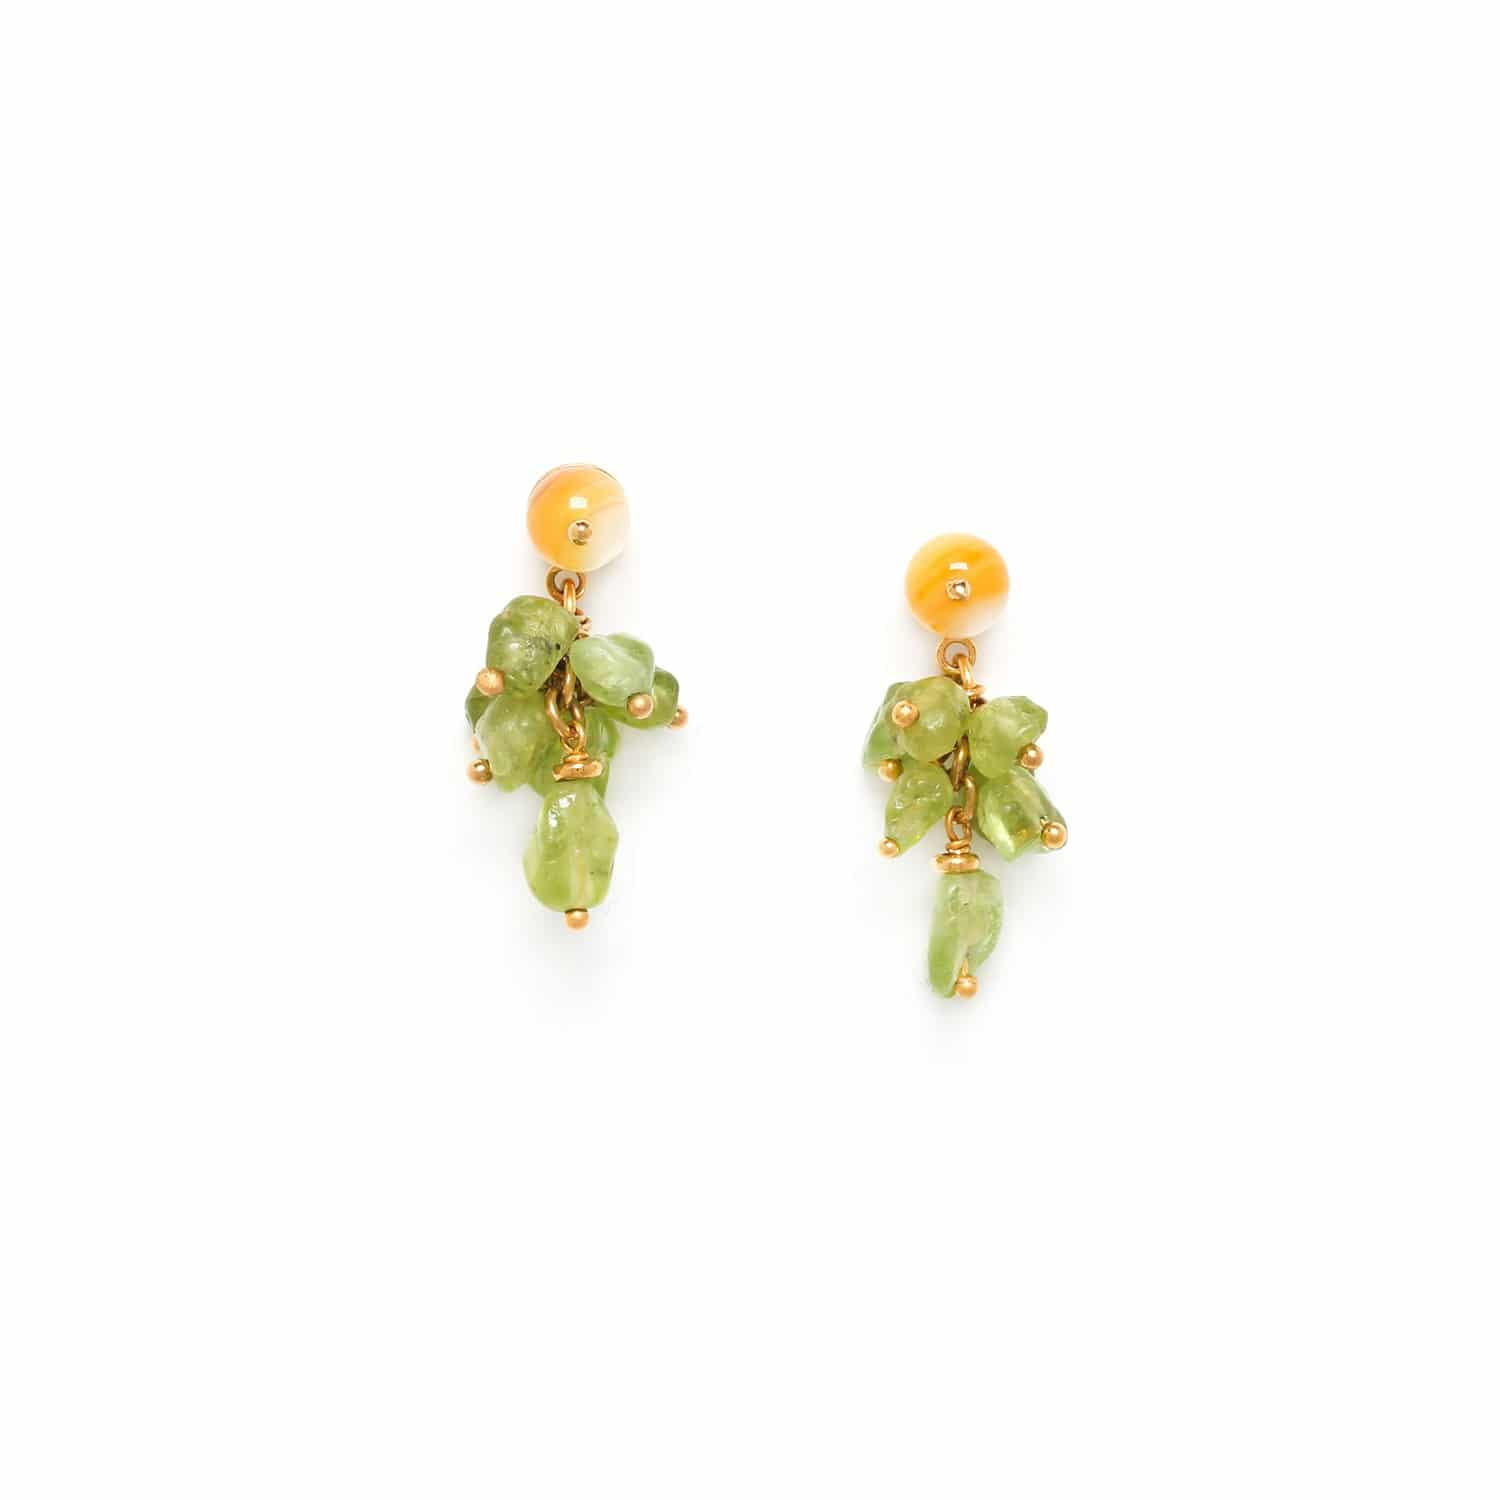 GINKGO peridot grape earrings